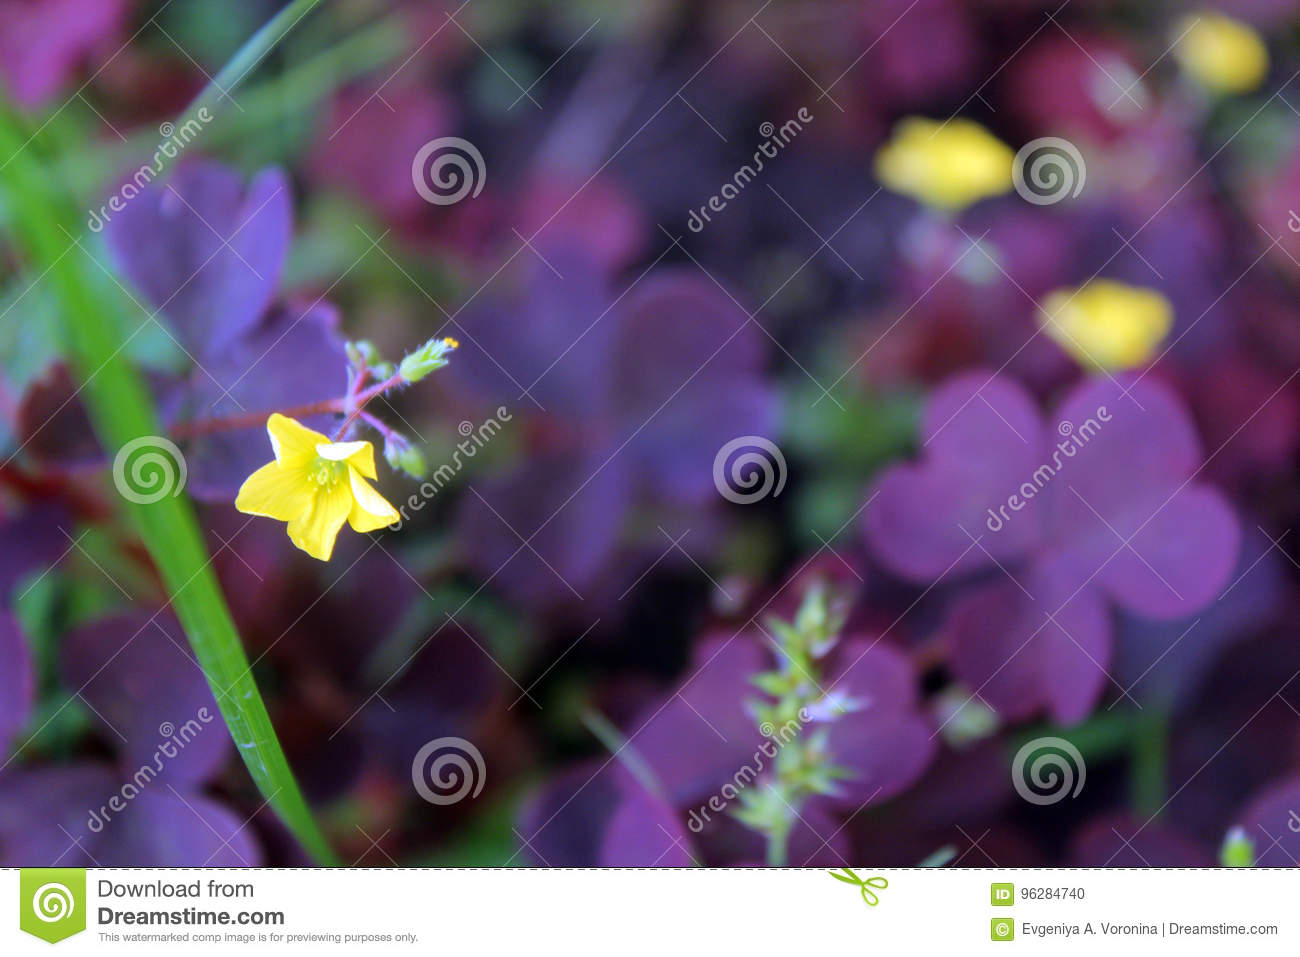 Clover in bloom 2 stock photo image of dacha summer 96284740 a blooming with yellow flowers clover with leaves of unusual violet colour mightylinksfo